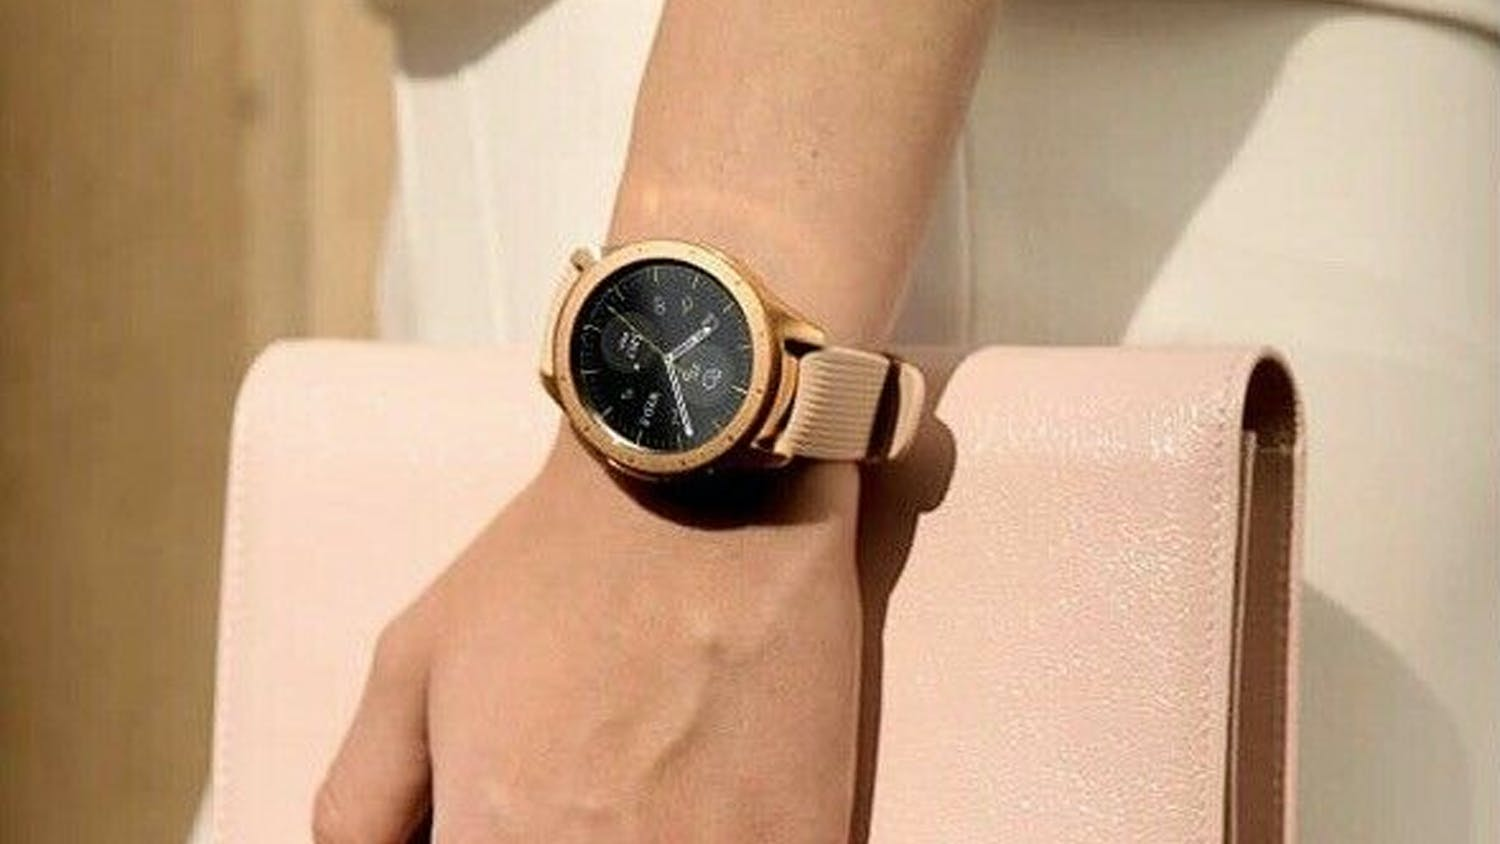 Samsung Galaxy Watch - Rose Gold 42mm